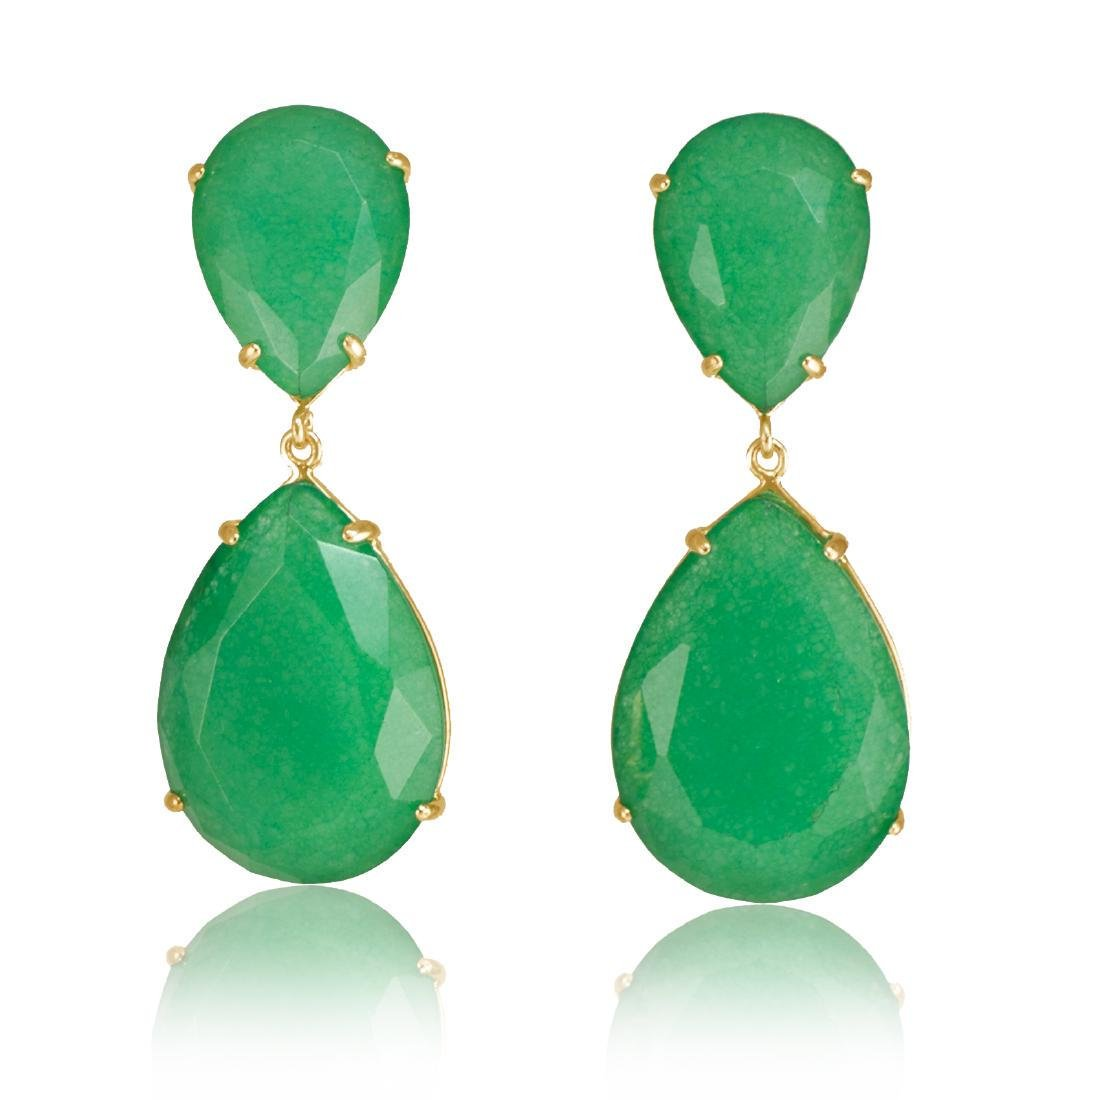 Emerald Green Jade Two Parts Earrings